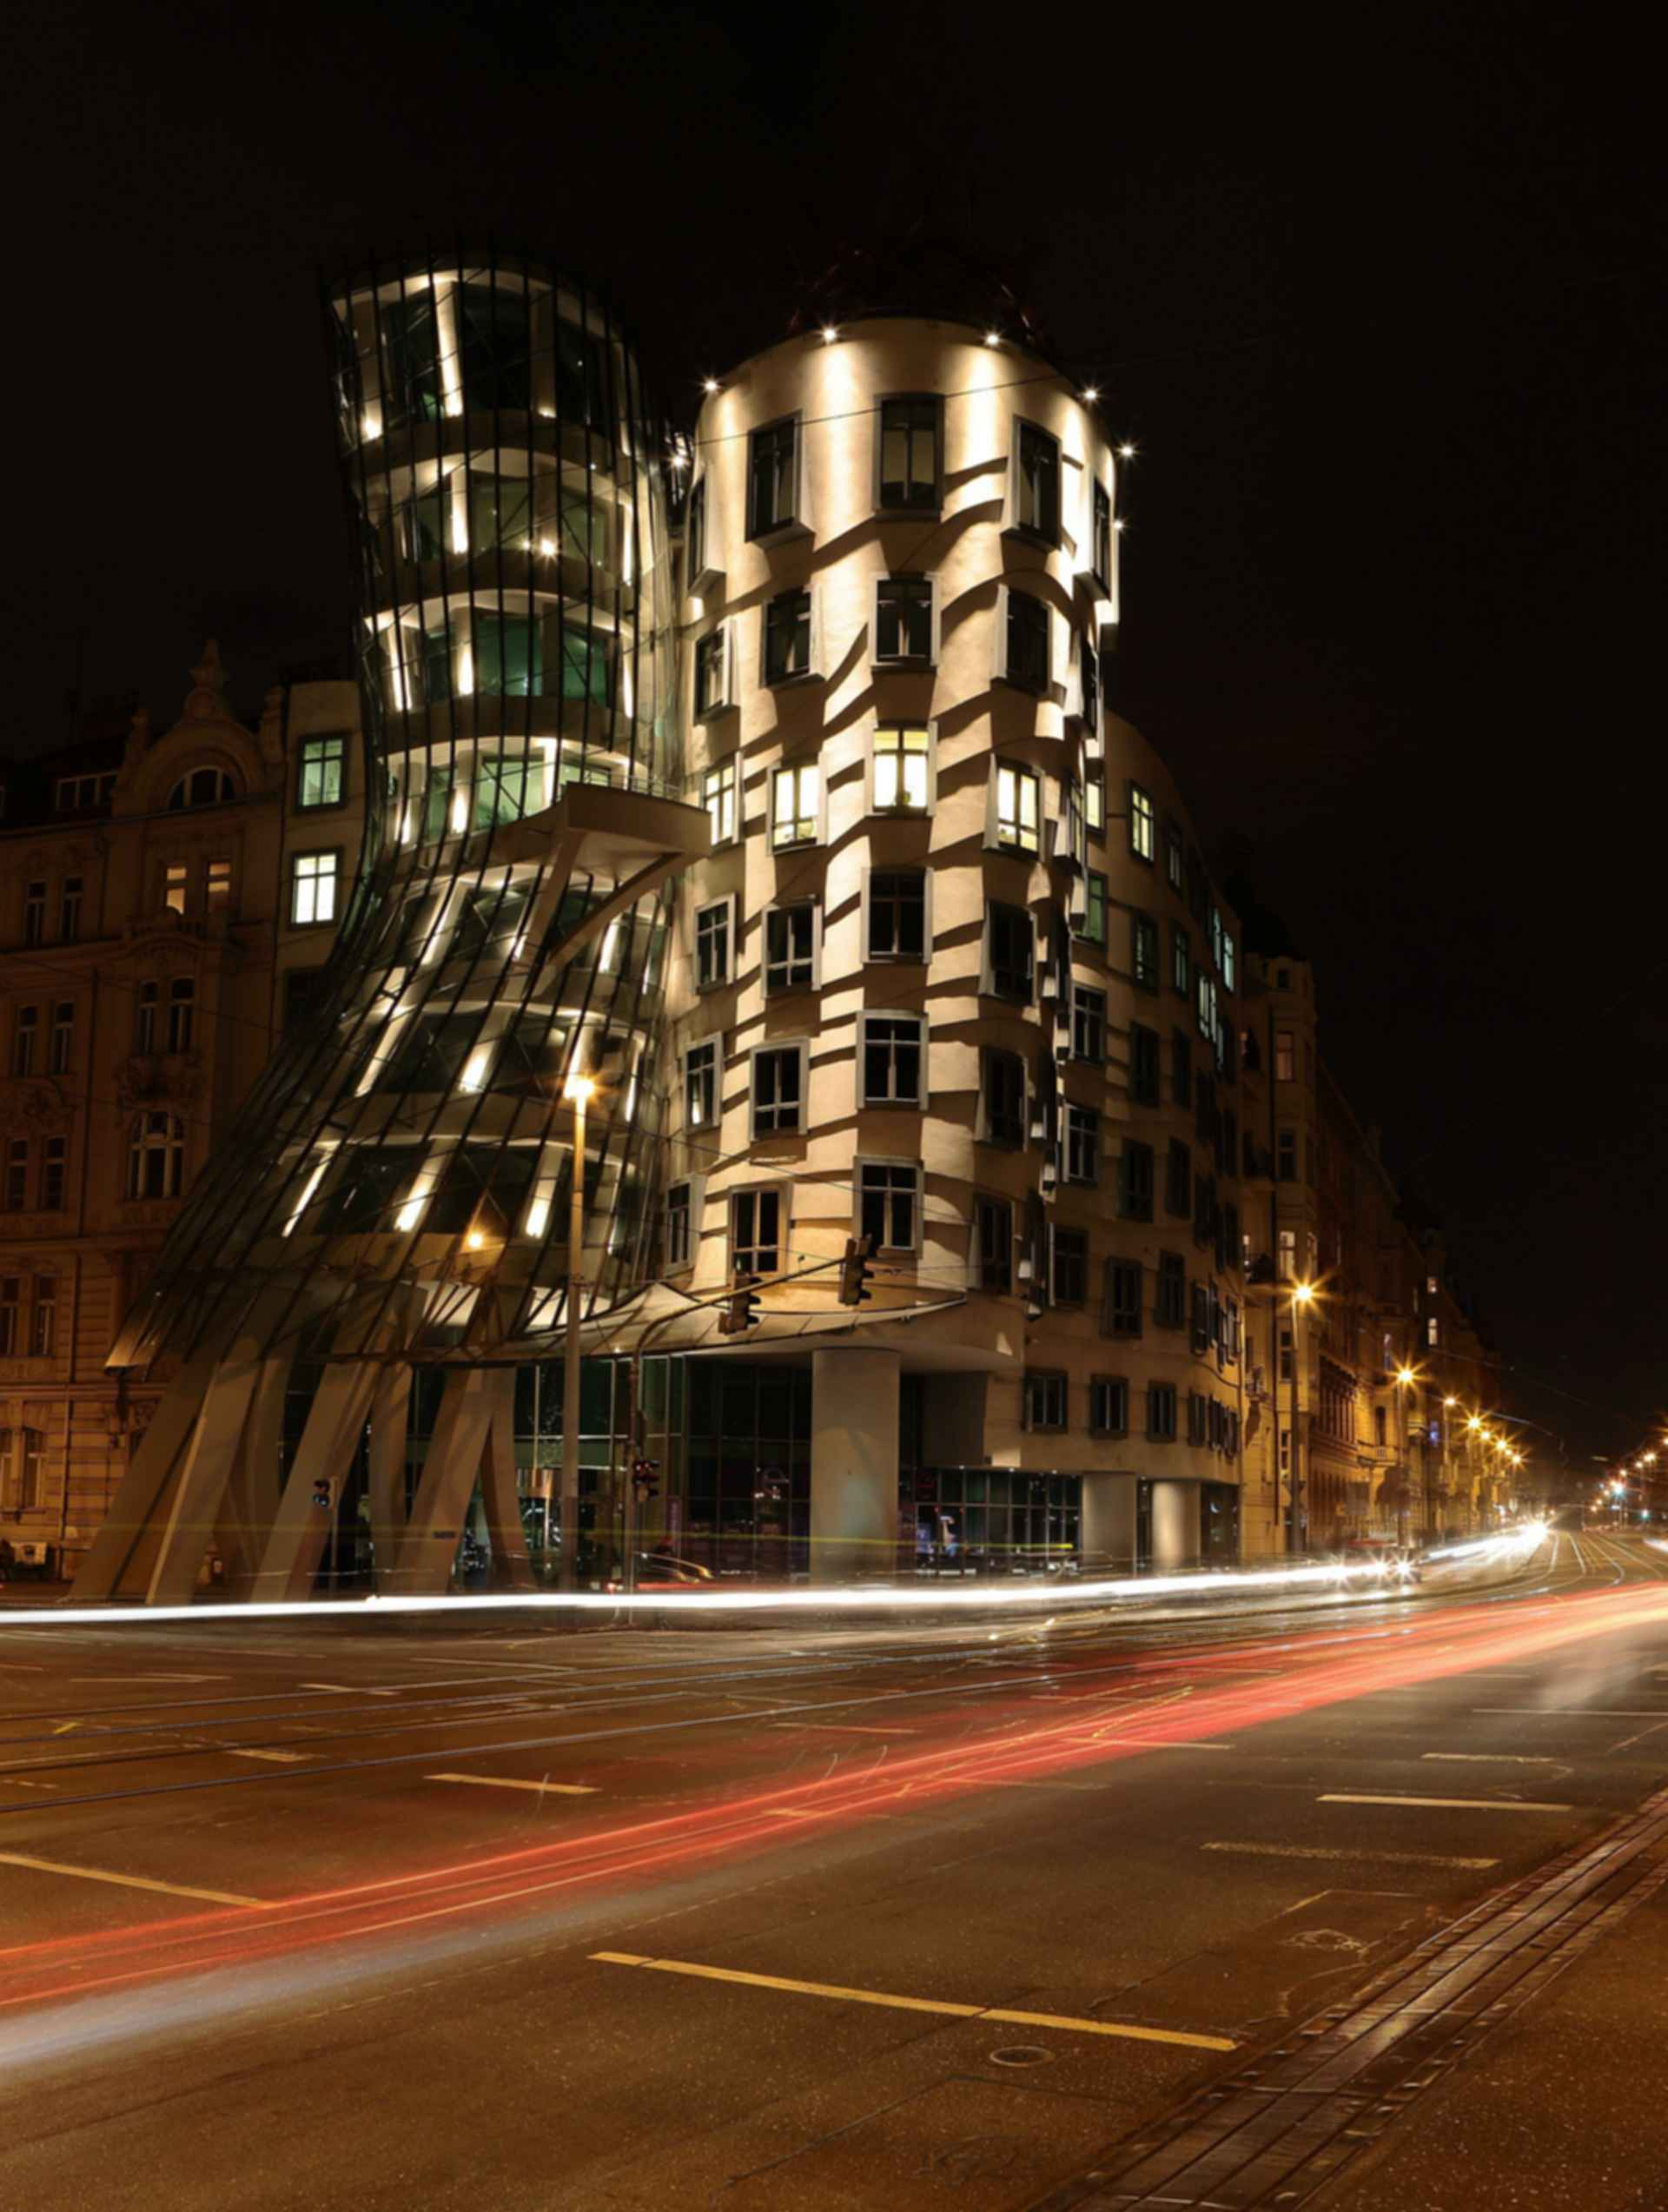 Dancing House - At Night